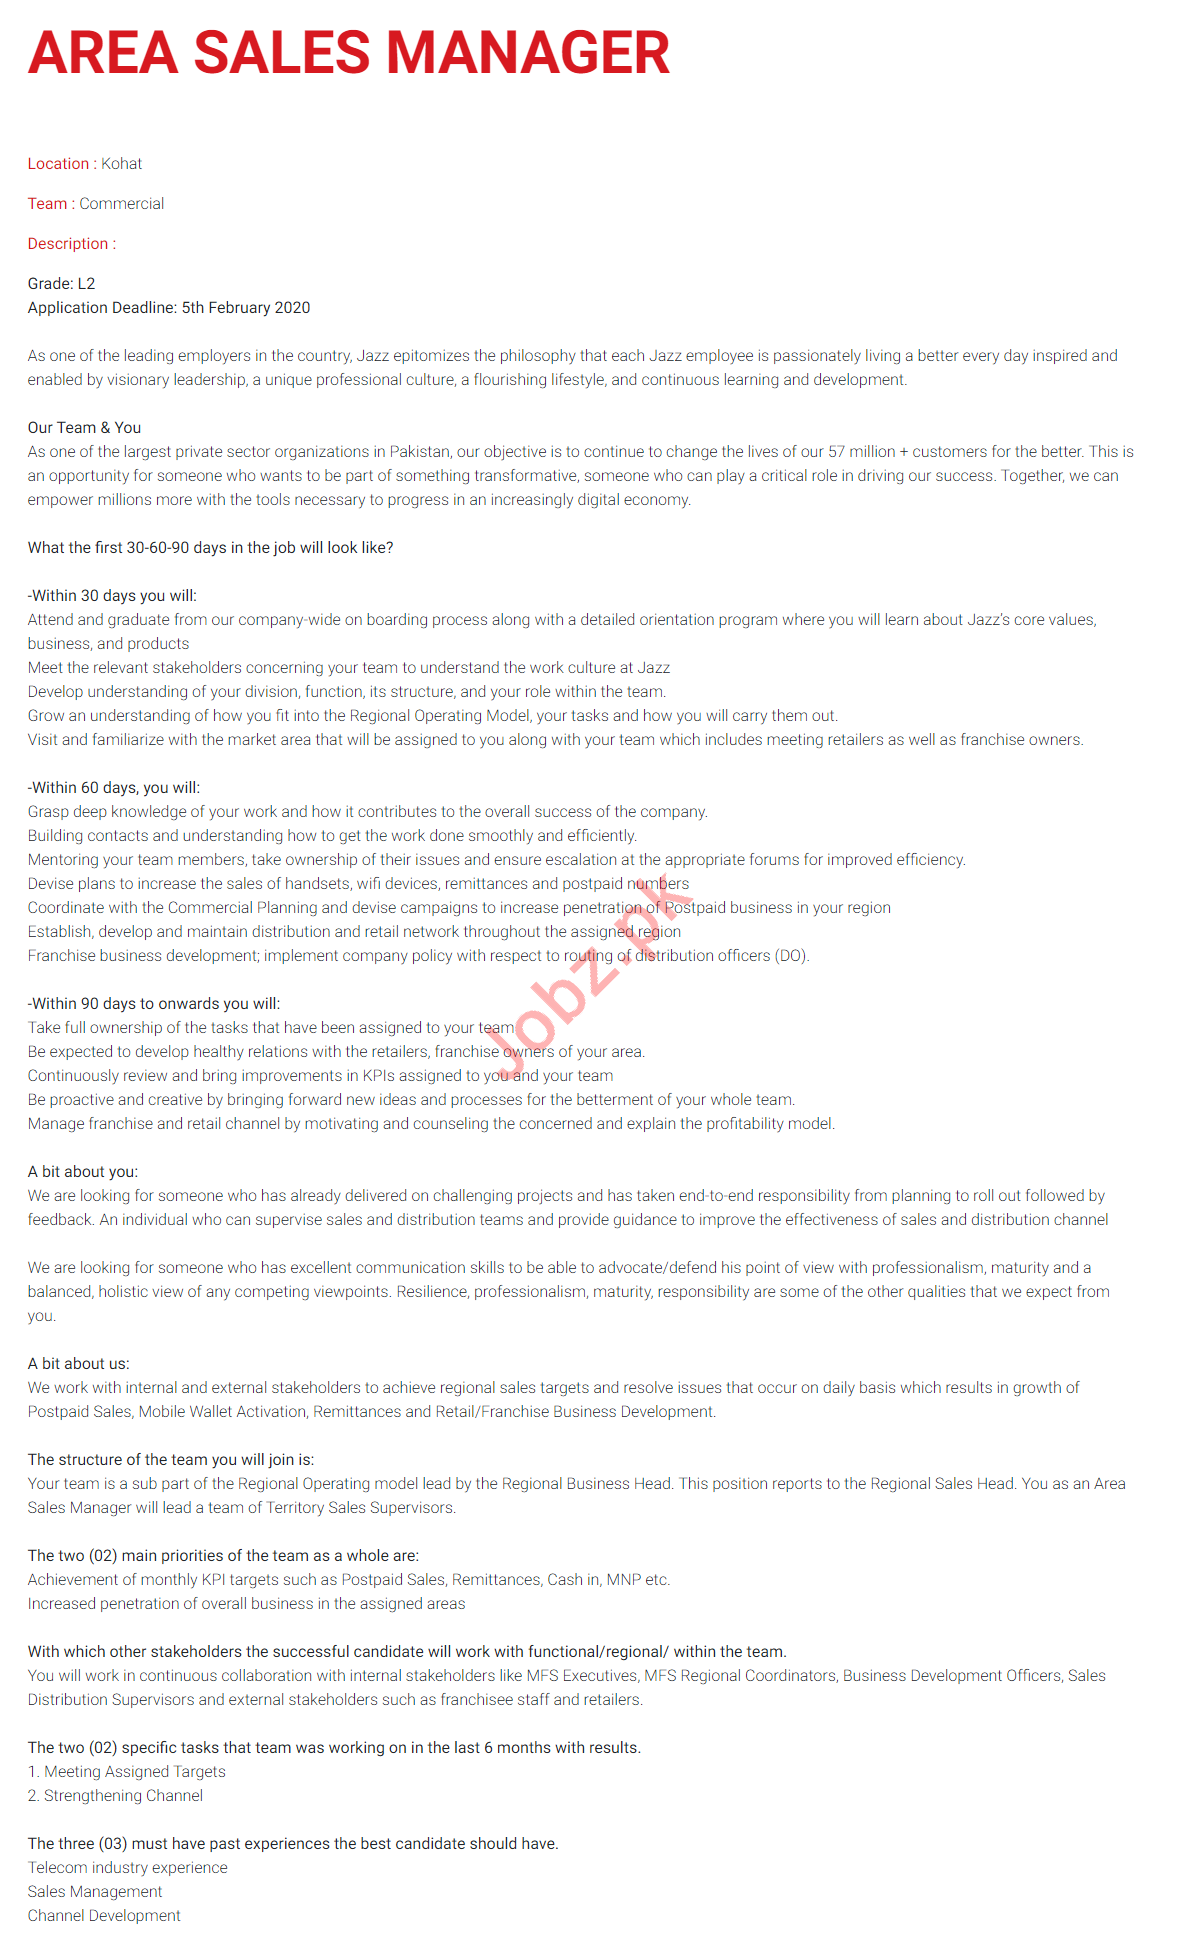 Area Sales Manager Jobs 2020 in Jazz Telecom